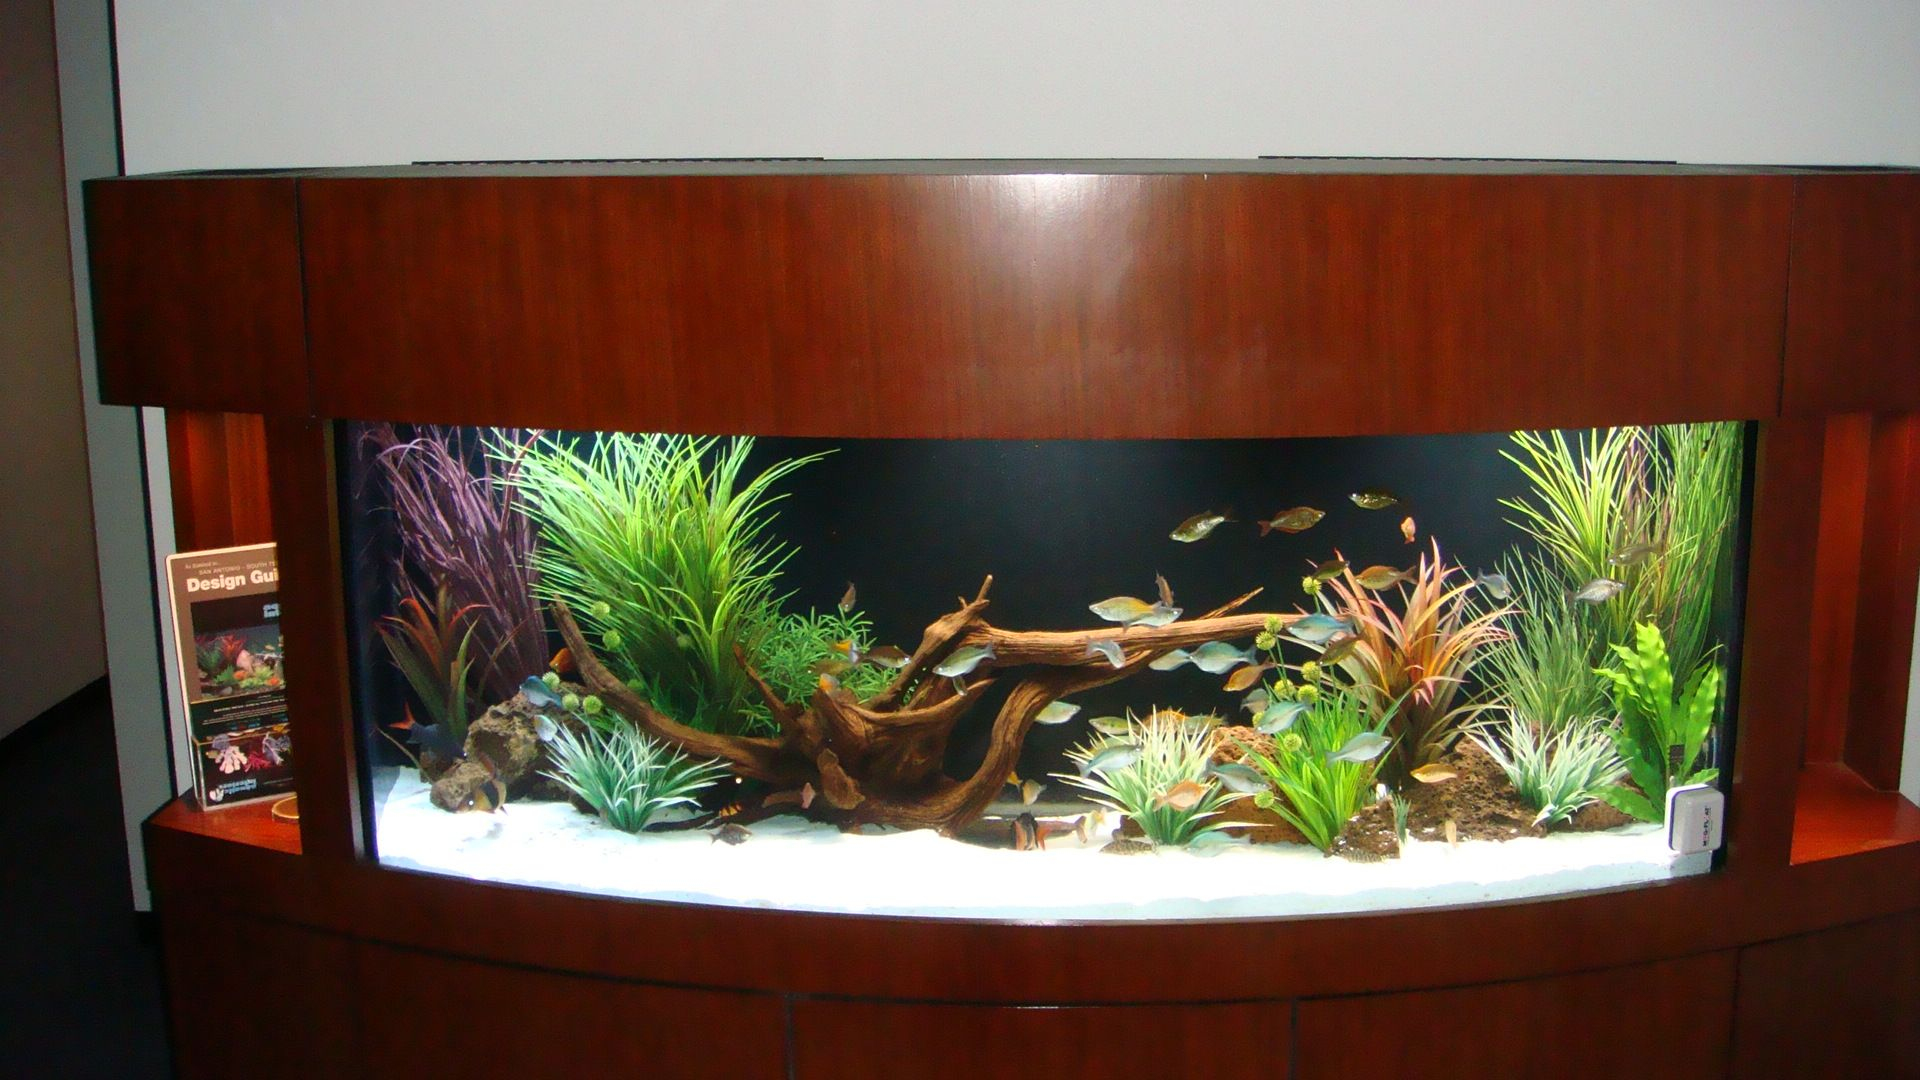 Elegant Fish Tank With Wood Case Furniture And Natural Grass Decoration  Ideas With Natural Aquarium Plant Modern Aquarium Tank Design With  Beautiful ...